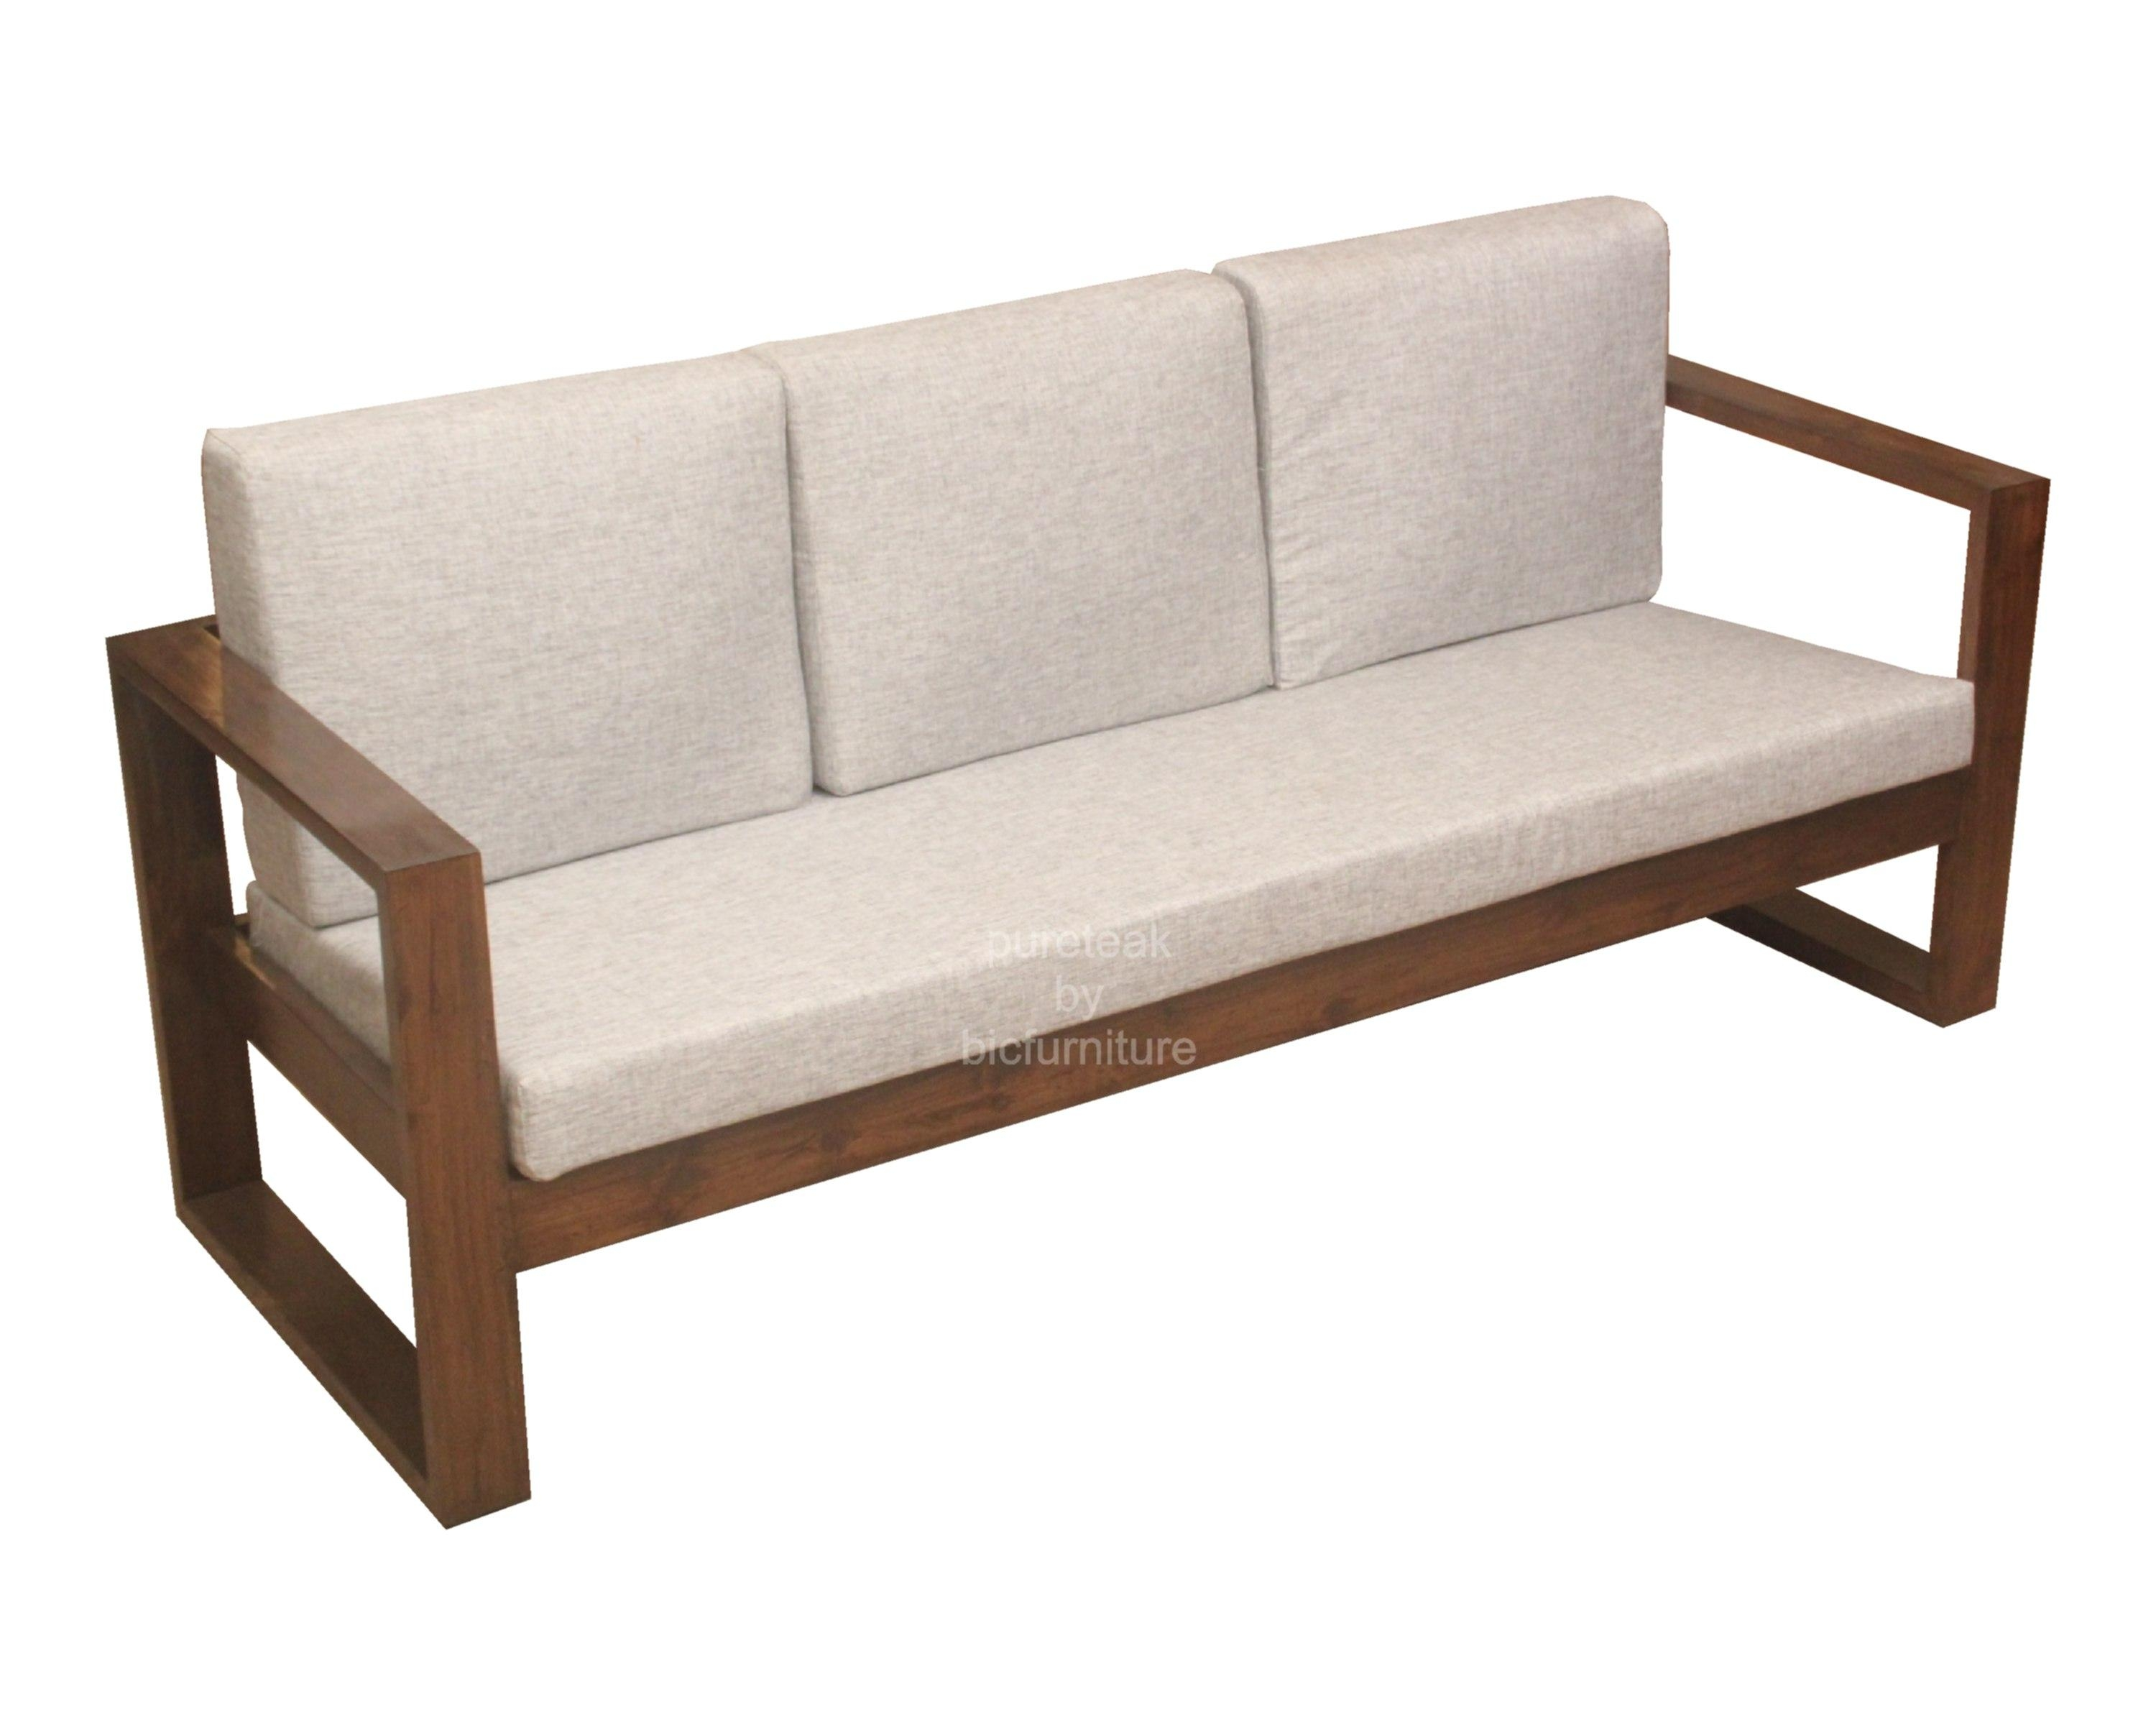 Wooden Sofa 20 Ideas Of Simple Sofas Sofa Ideas